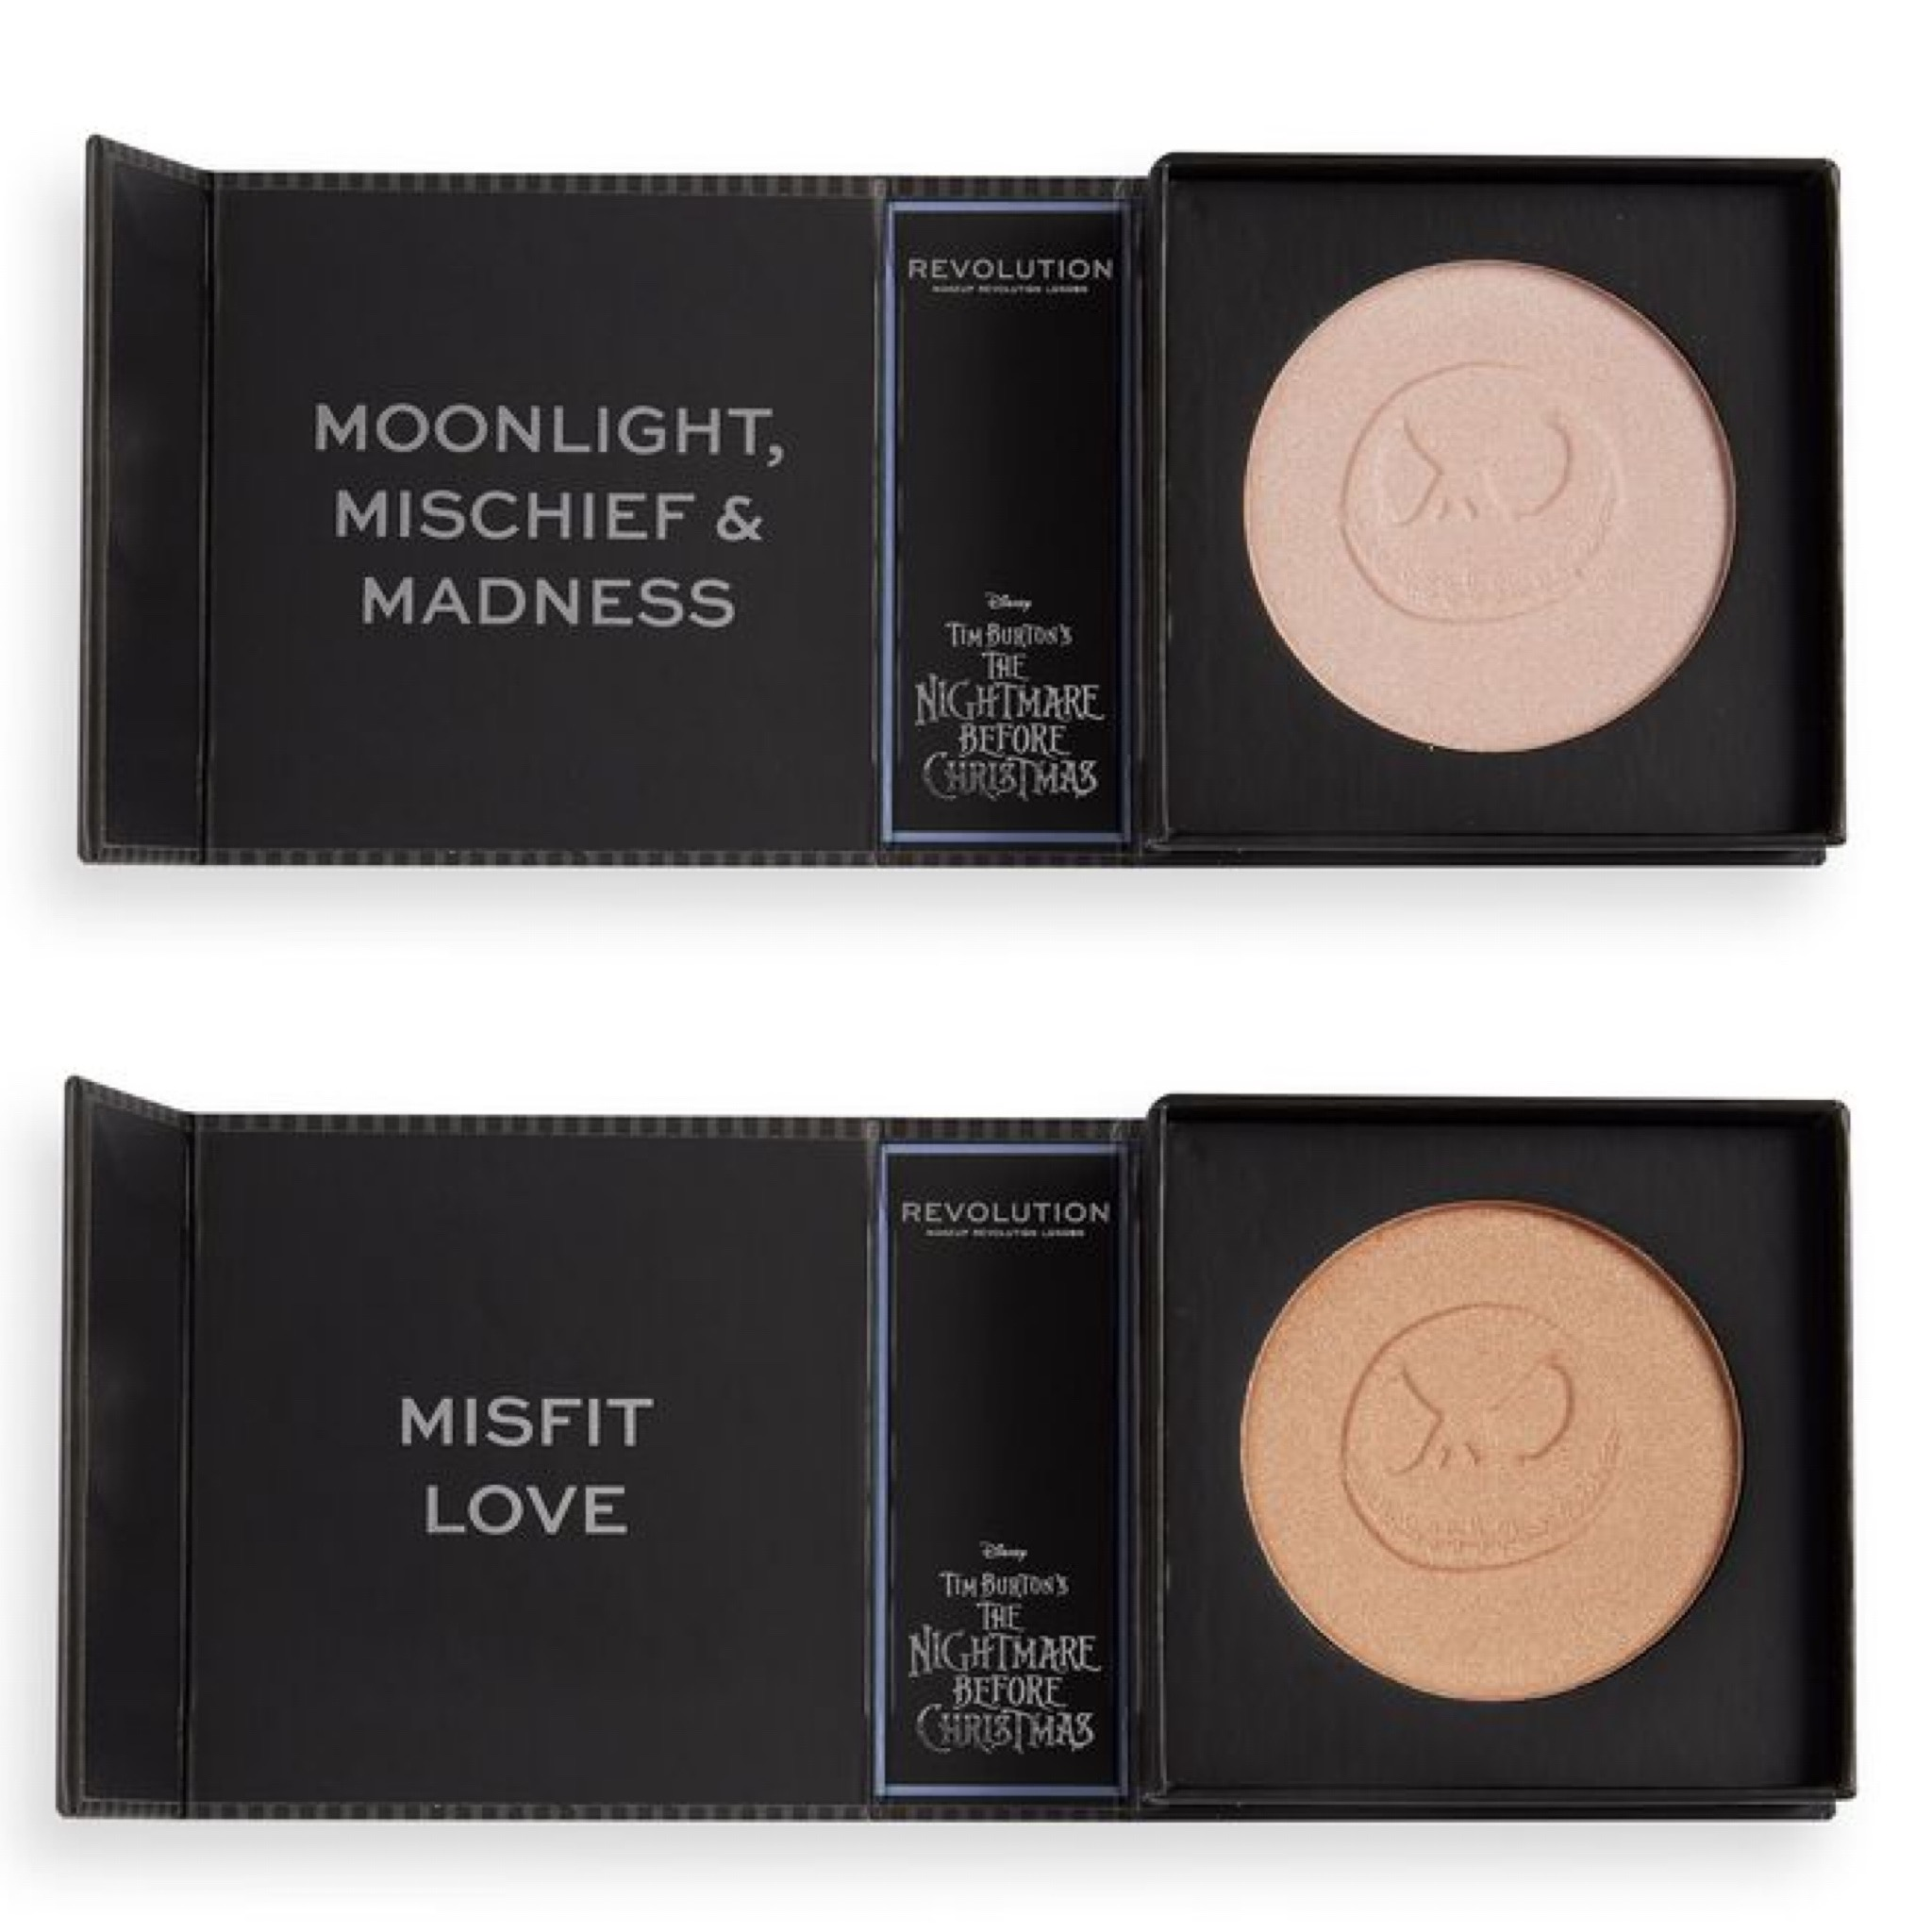 Revolution x The Nightmare Before Christmas Highlighters